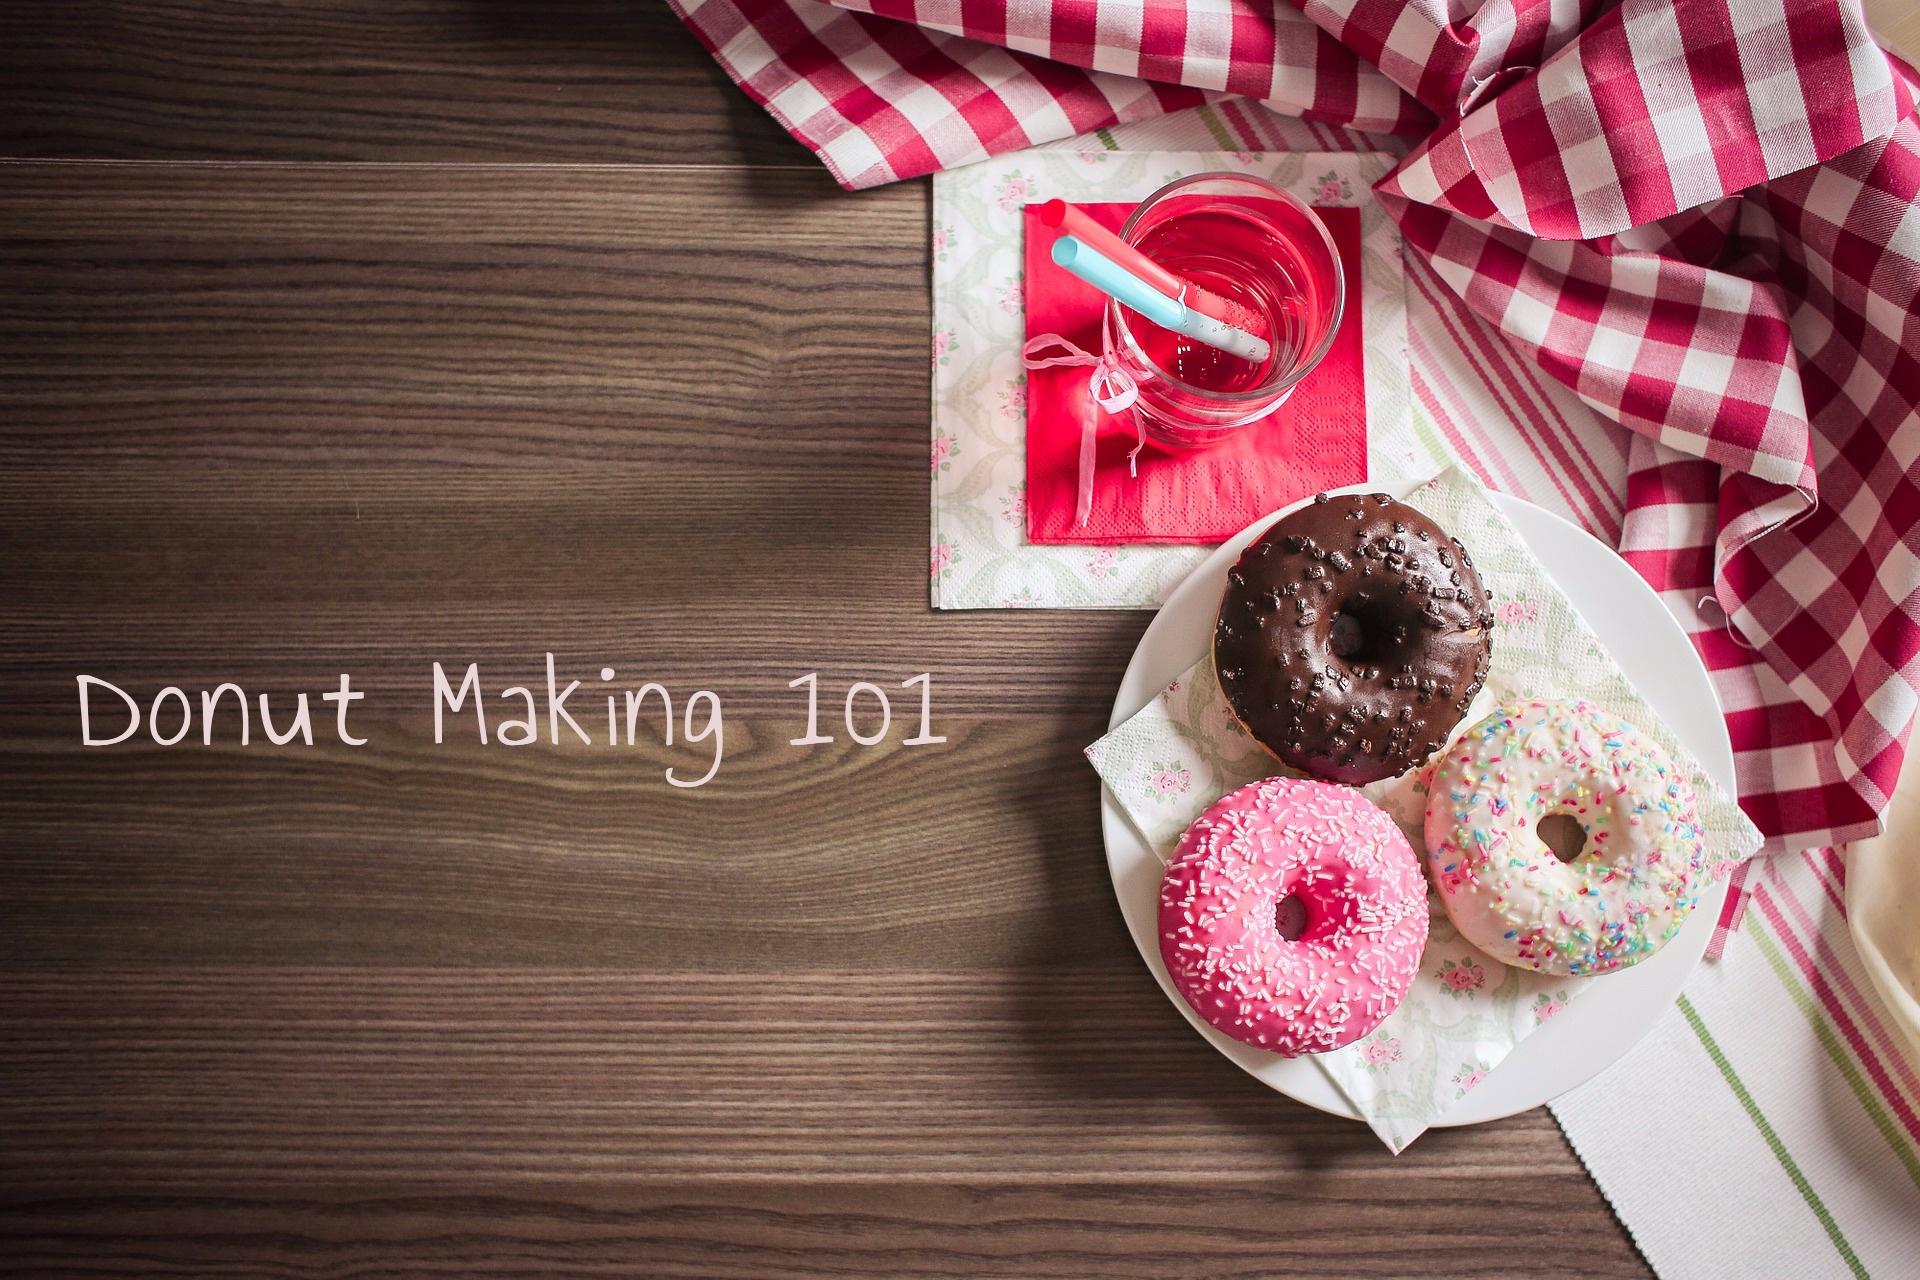 Donut Making 101